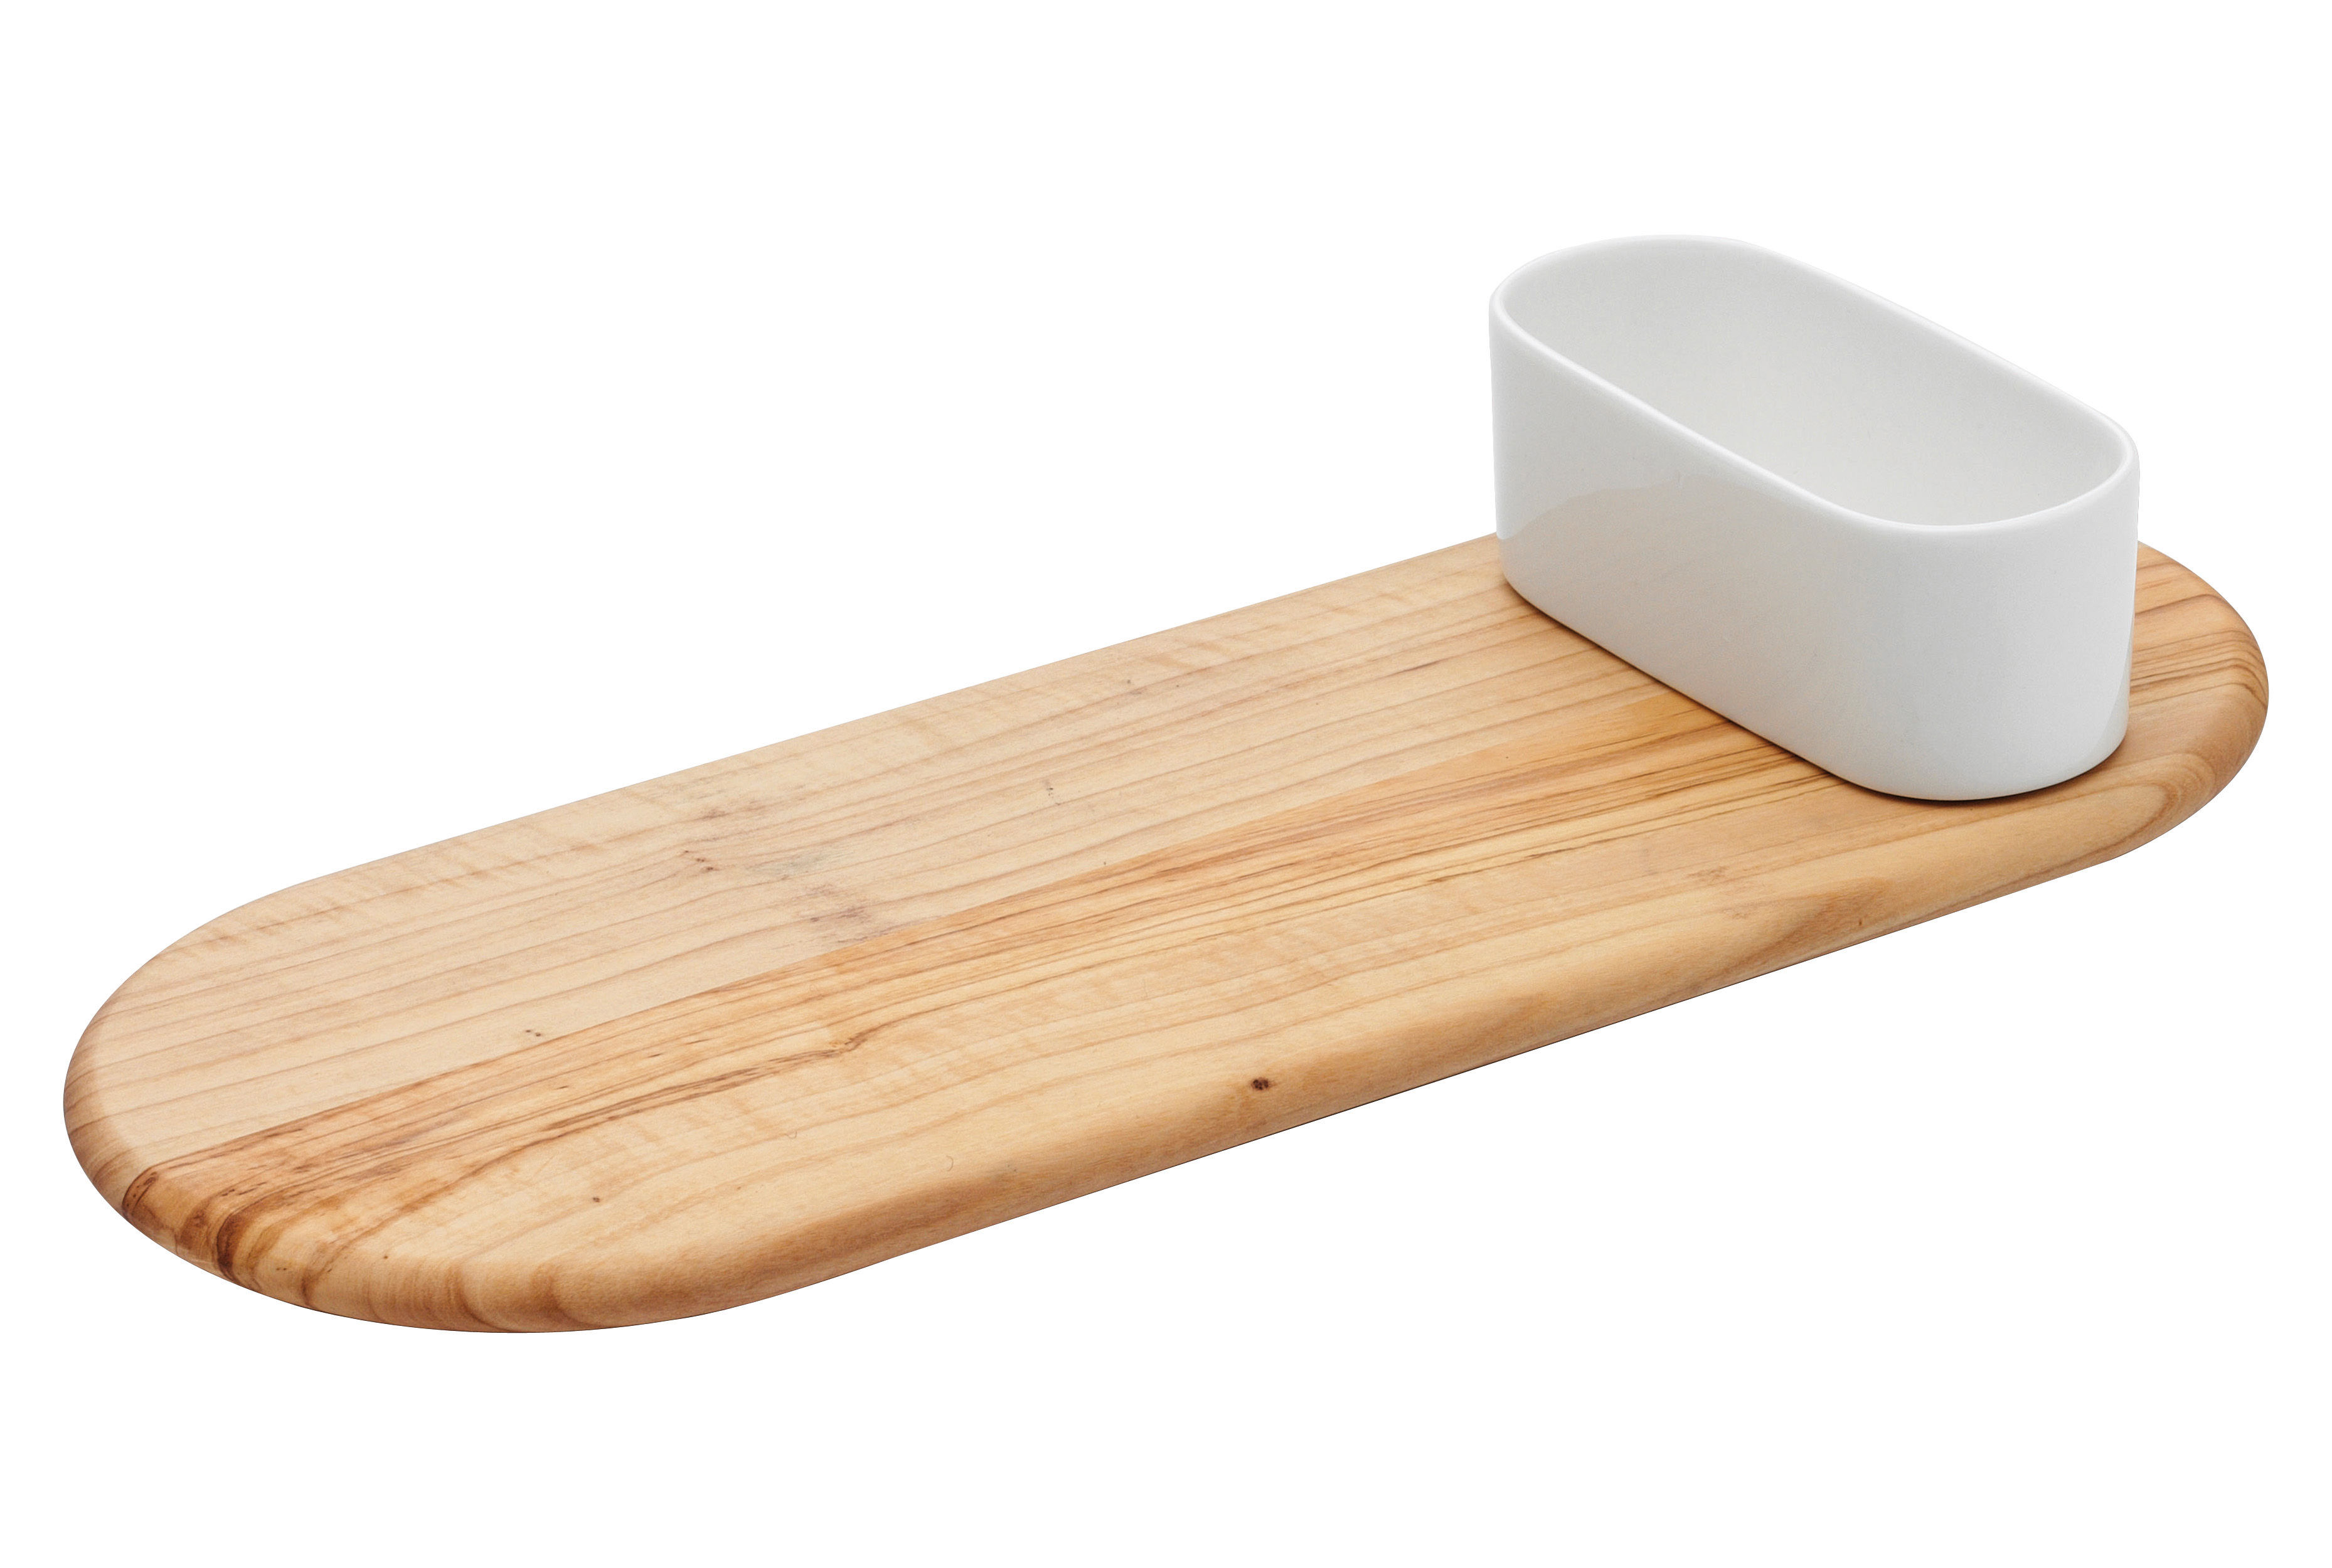 Kitchenware - Kitchen Equipment - Festa Chopping board - 40 x 15 cm by Serafino Zani - Wood & white - China, Olive tree